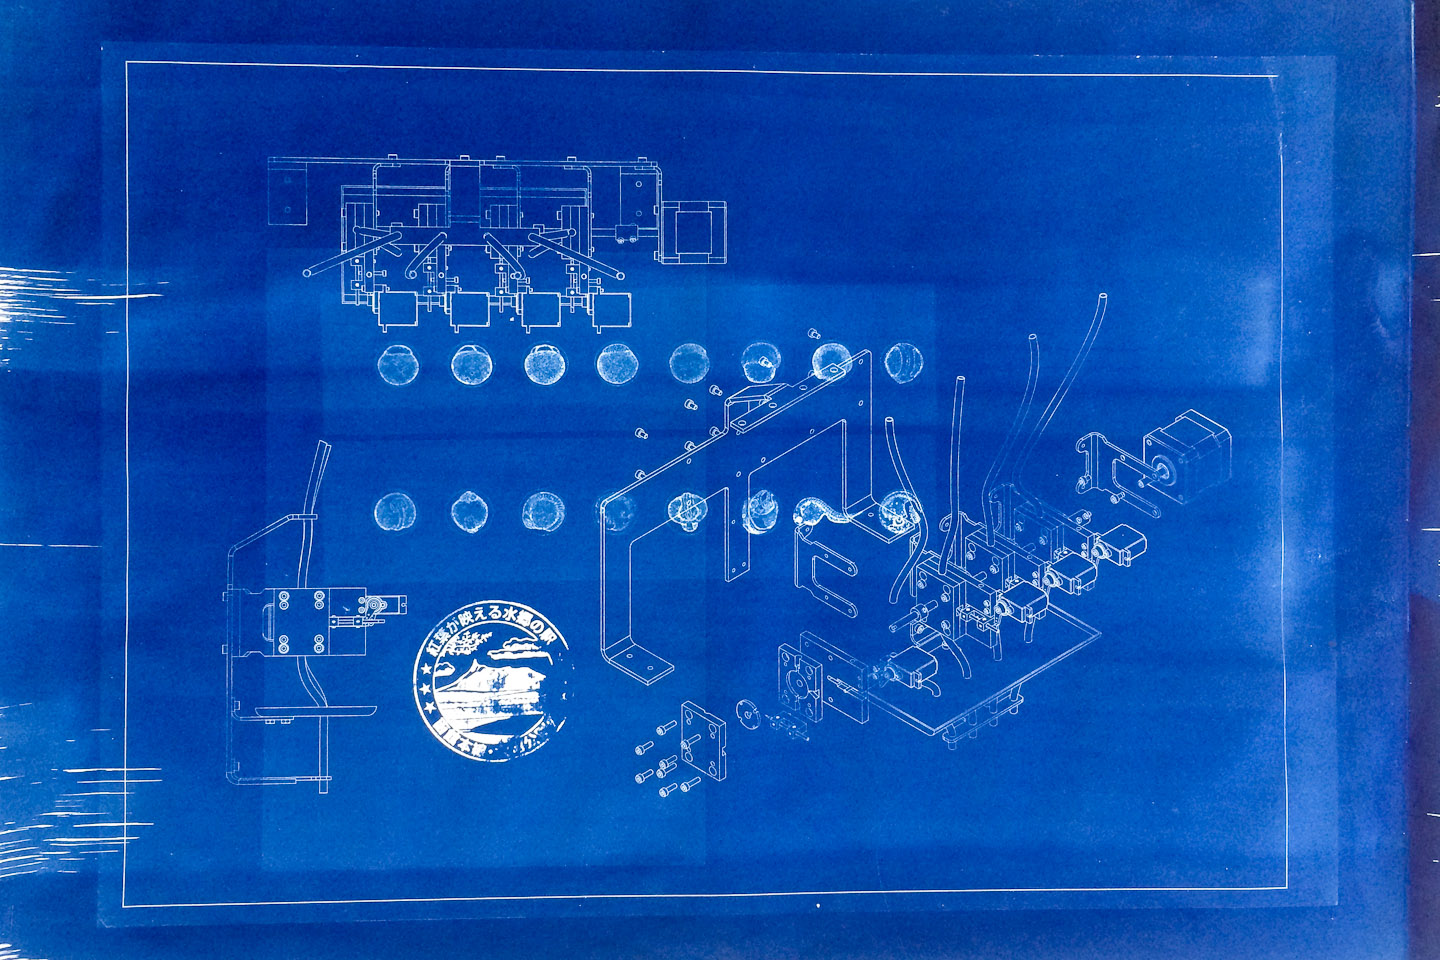 blueprint-sterile6-1440